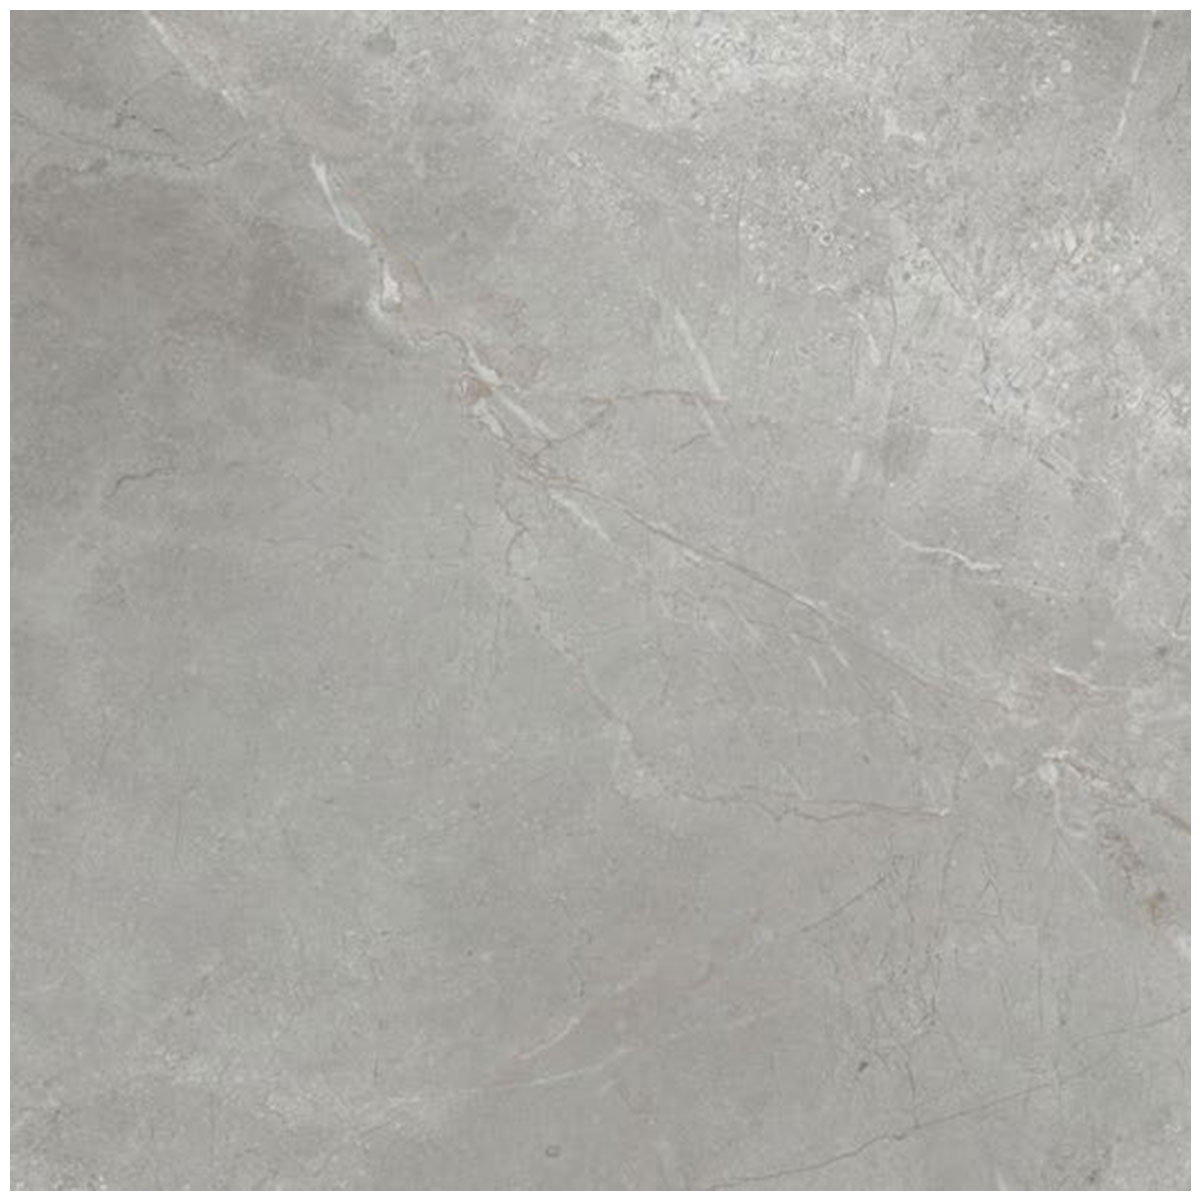 Chiswick-grey-honed-600x600-marble-look-tiles - Stone3